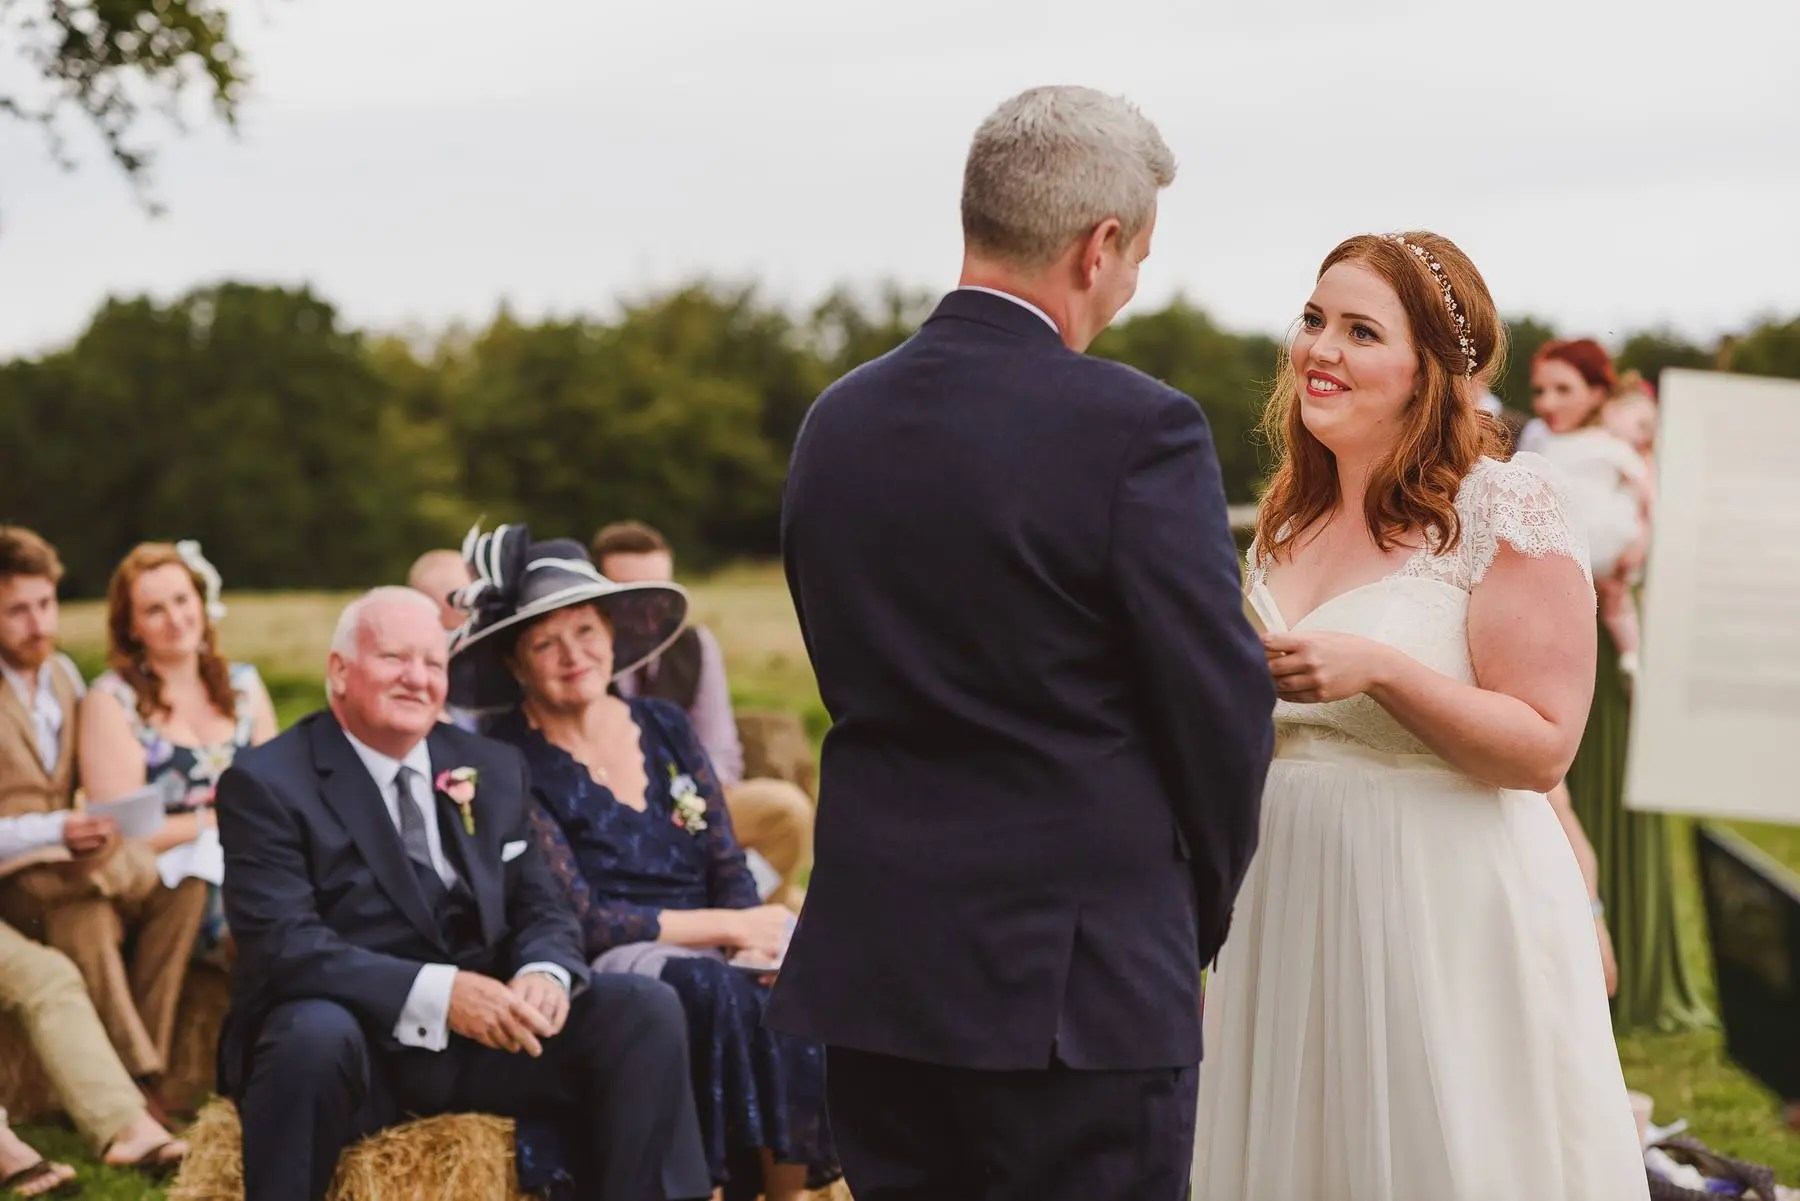 wedding ceremony at huntstile organic farm stone circle